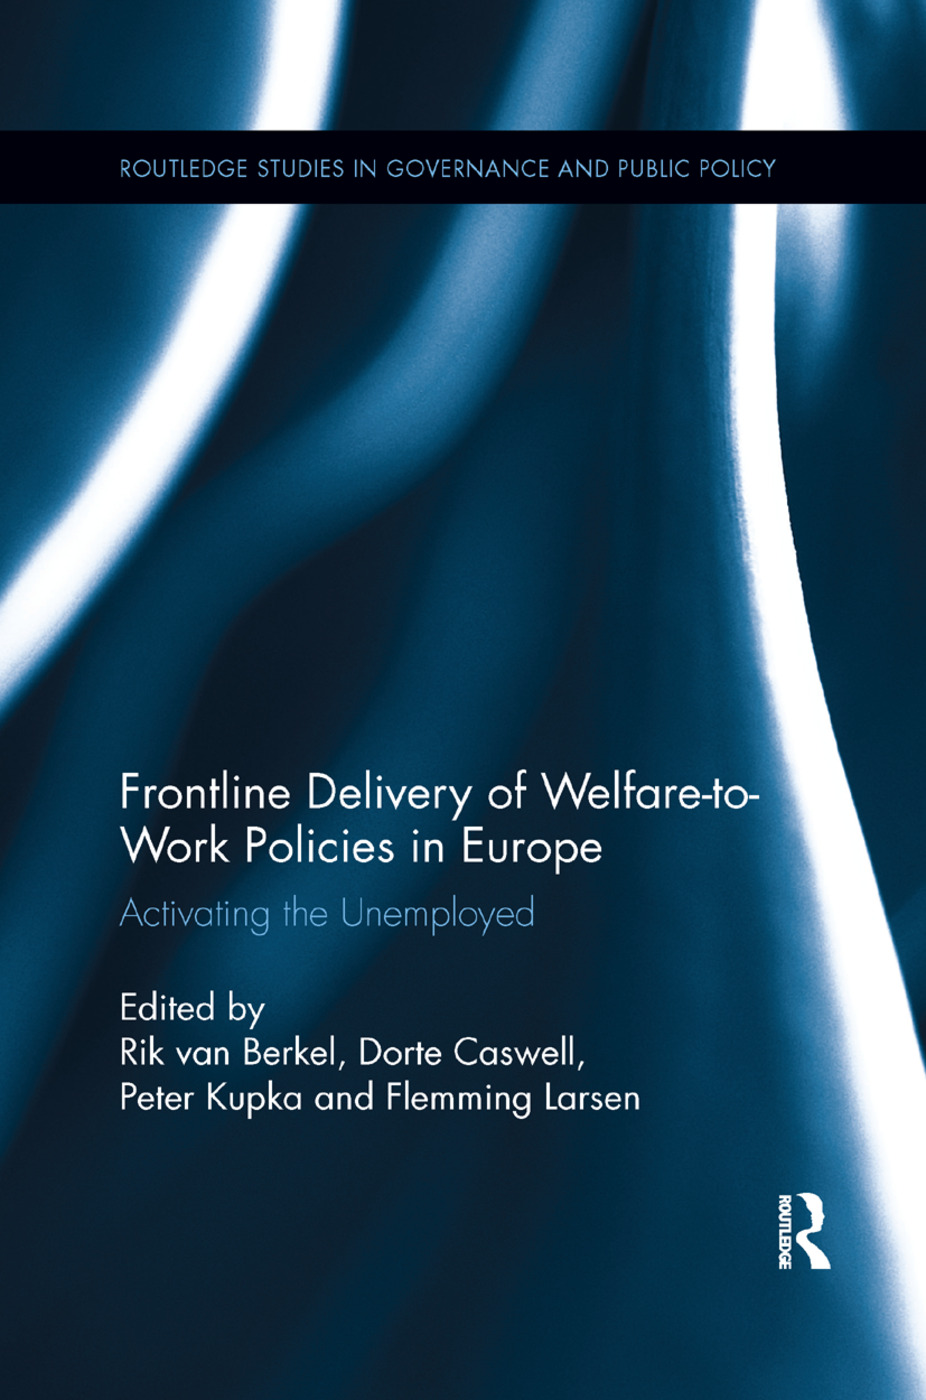 Frontline Delivery of Welfare-to-Work Policies in Europe